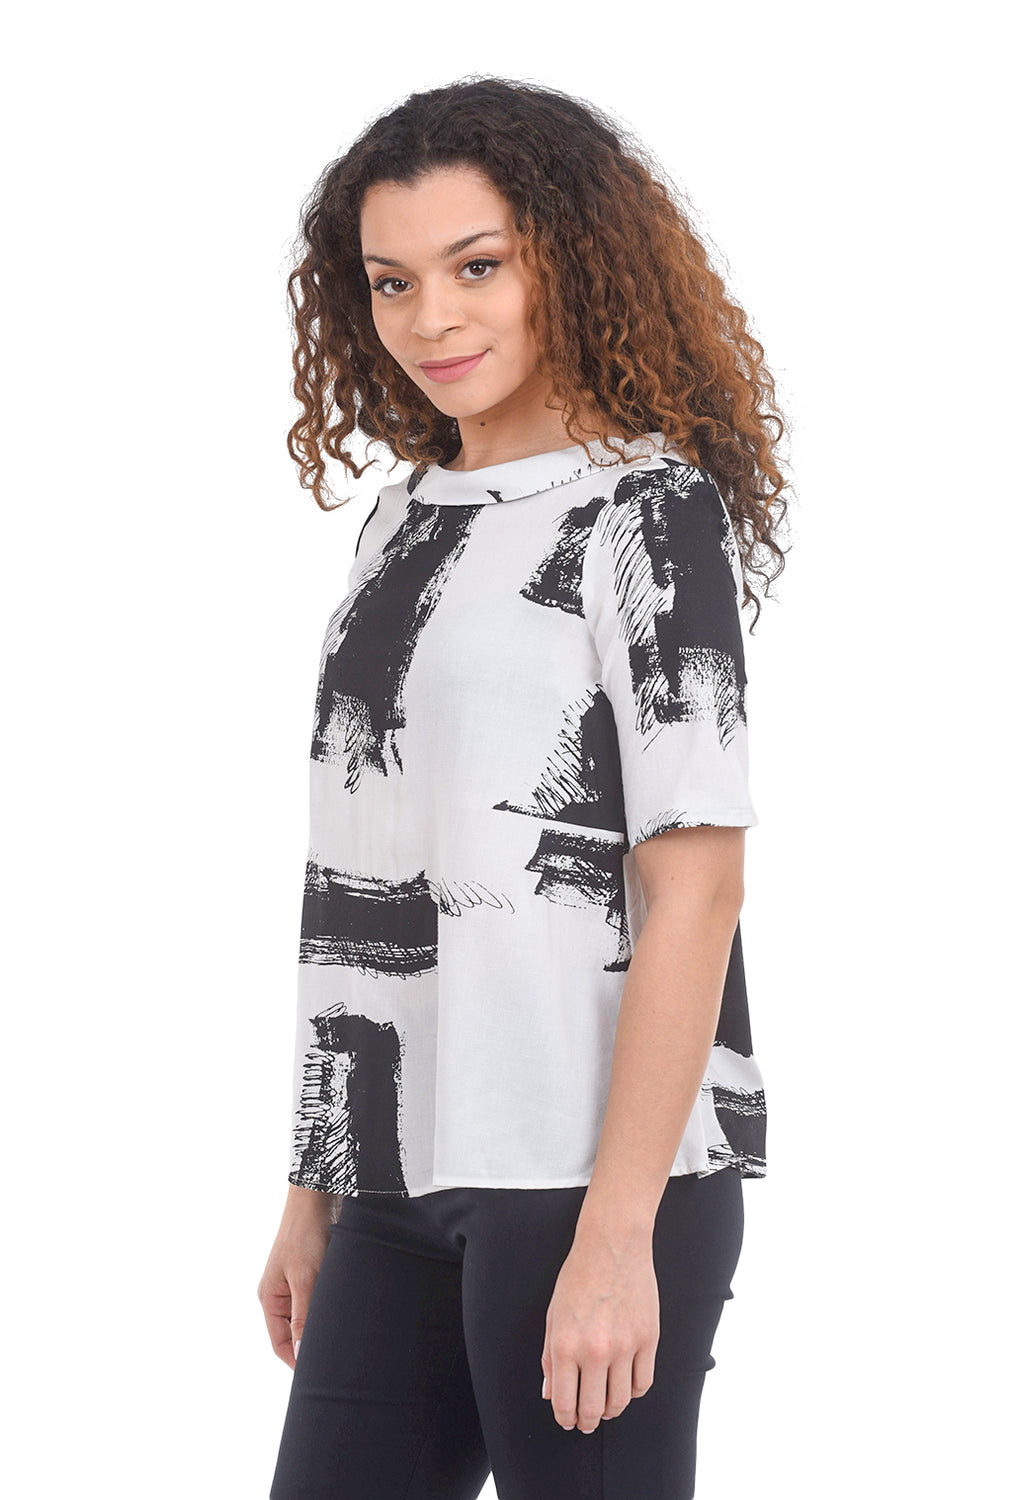 Niche Ink Blot Surface Top, Black/White